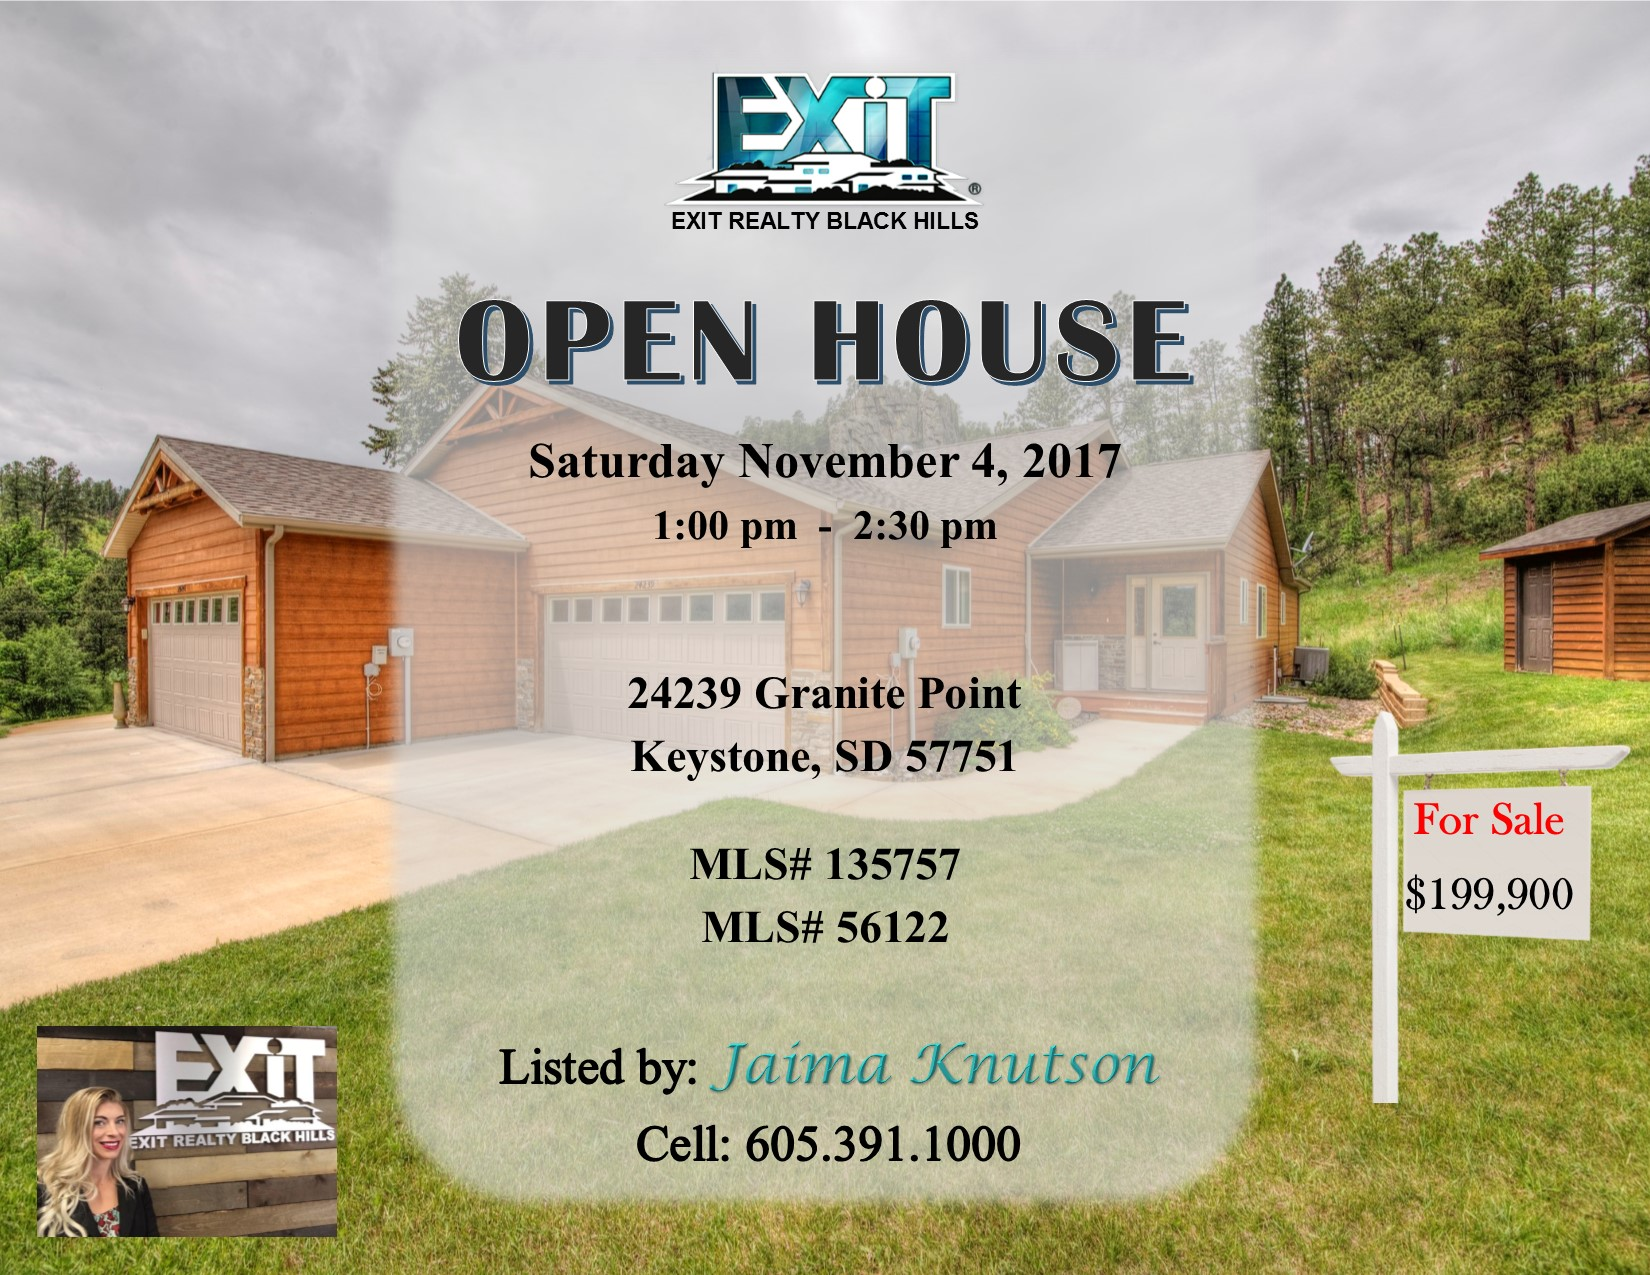 Open House Saturday November 4, 2017